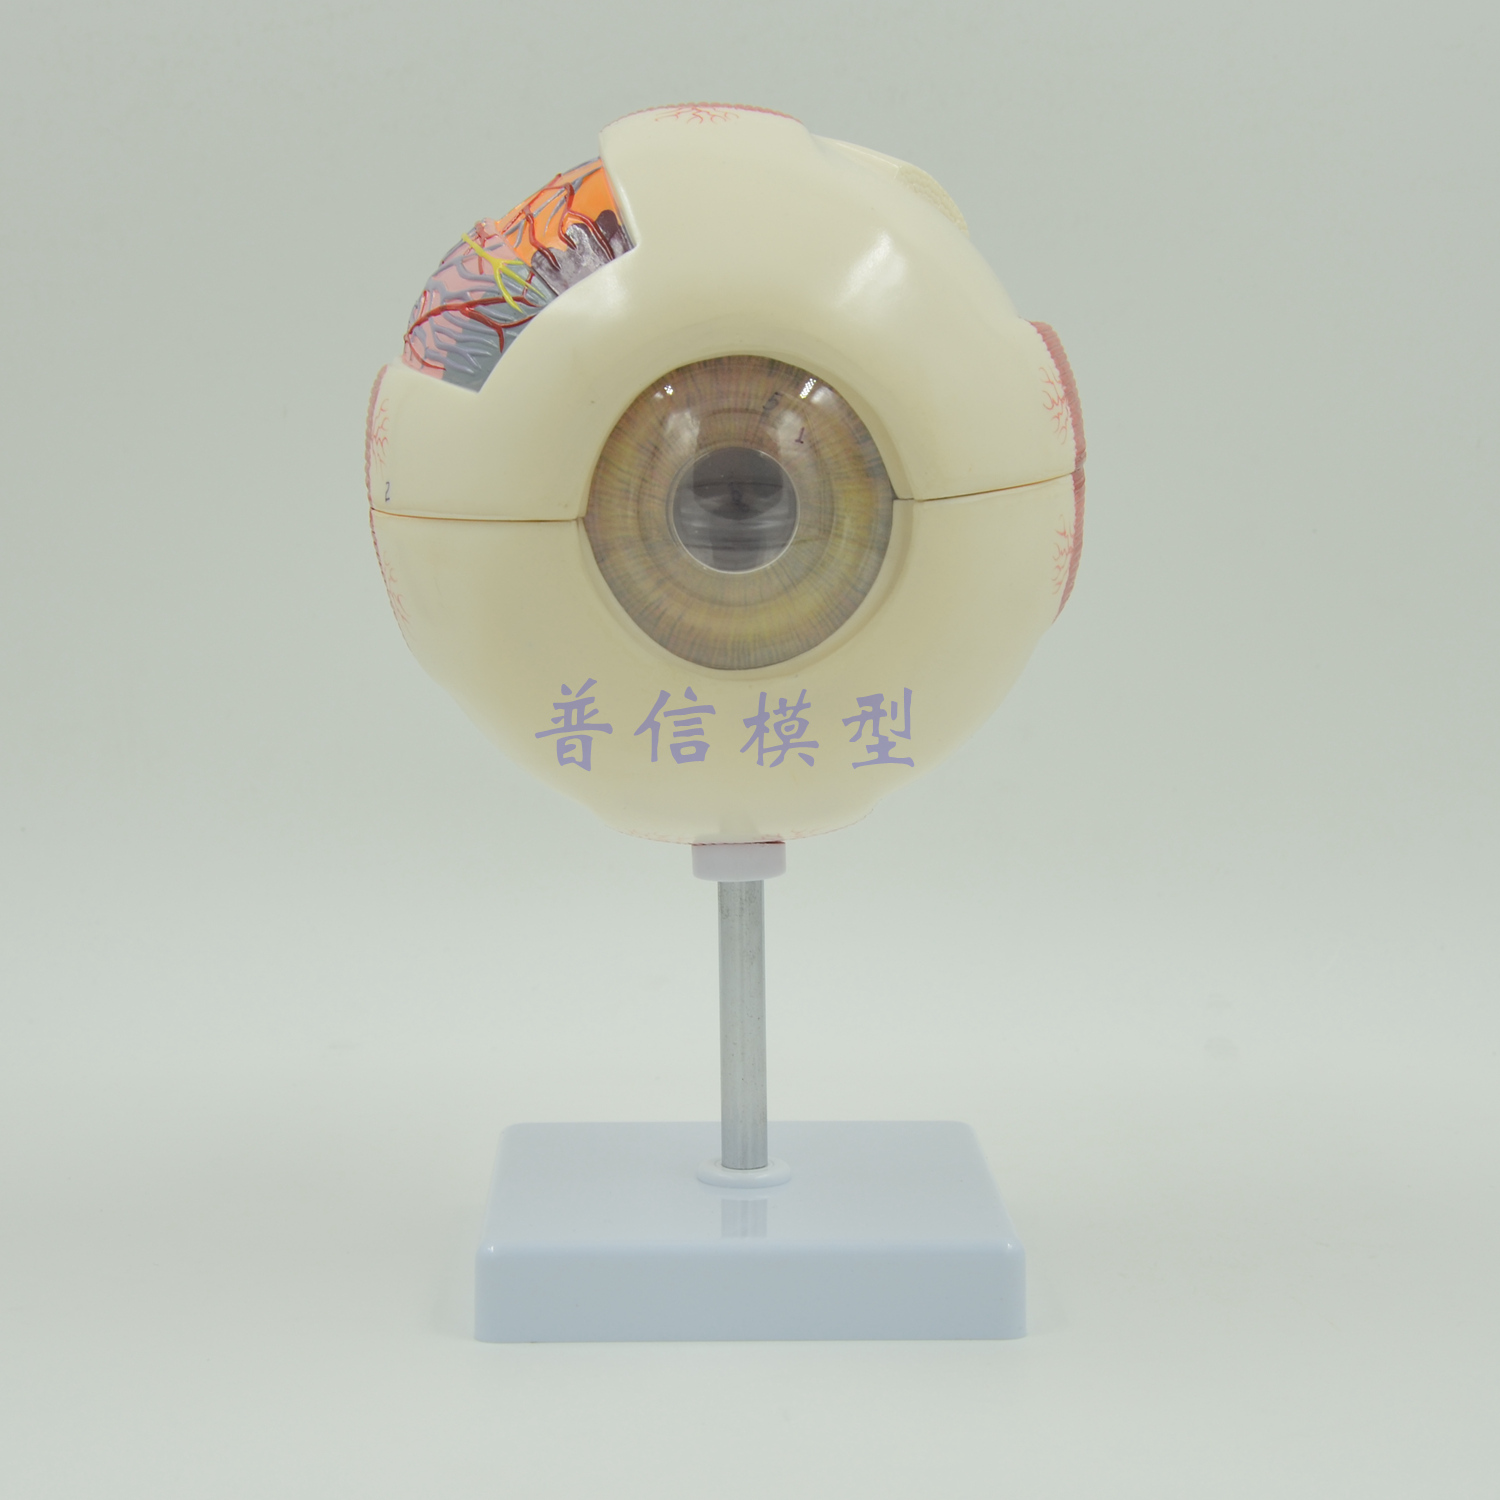 Buy eyeball anatomy model and get free shipping on AliExpress.com